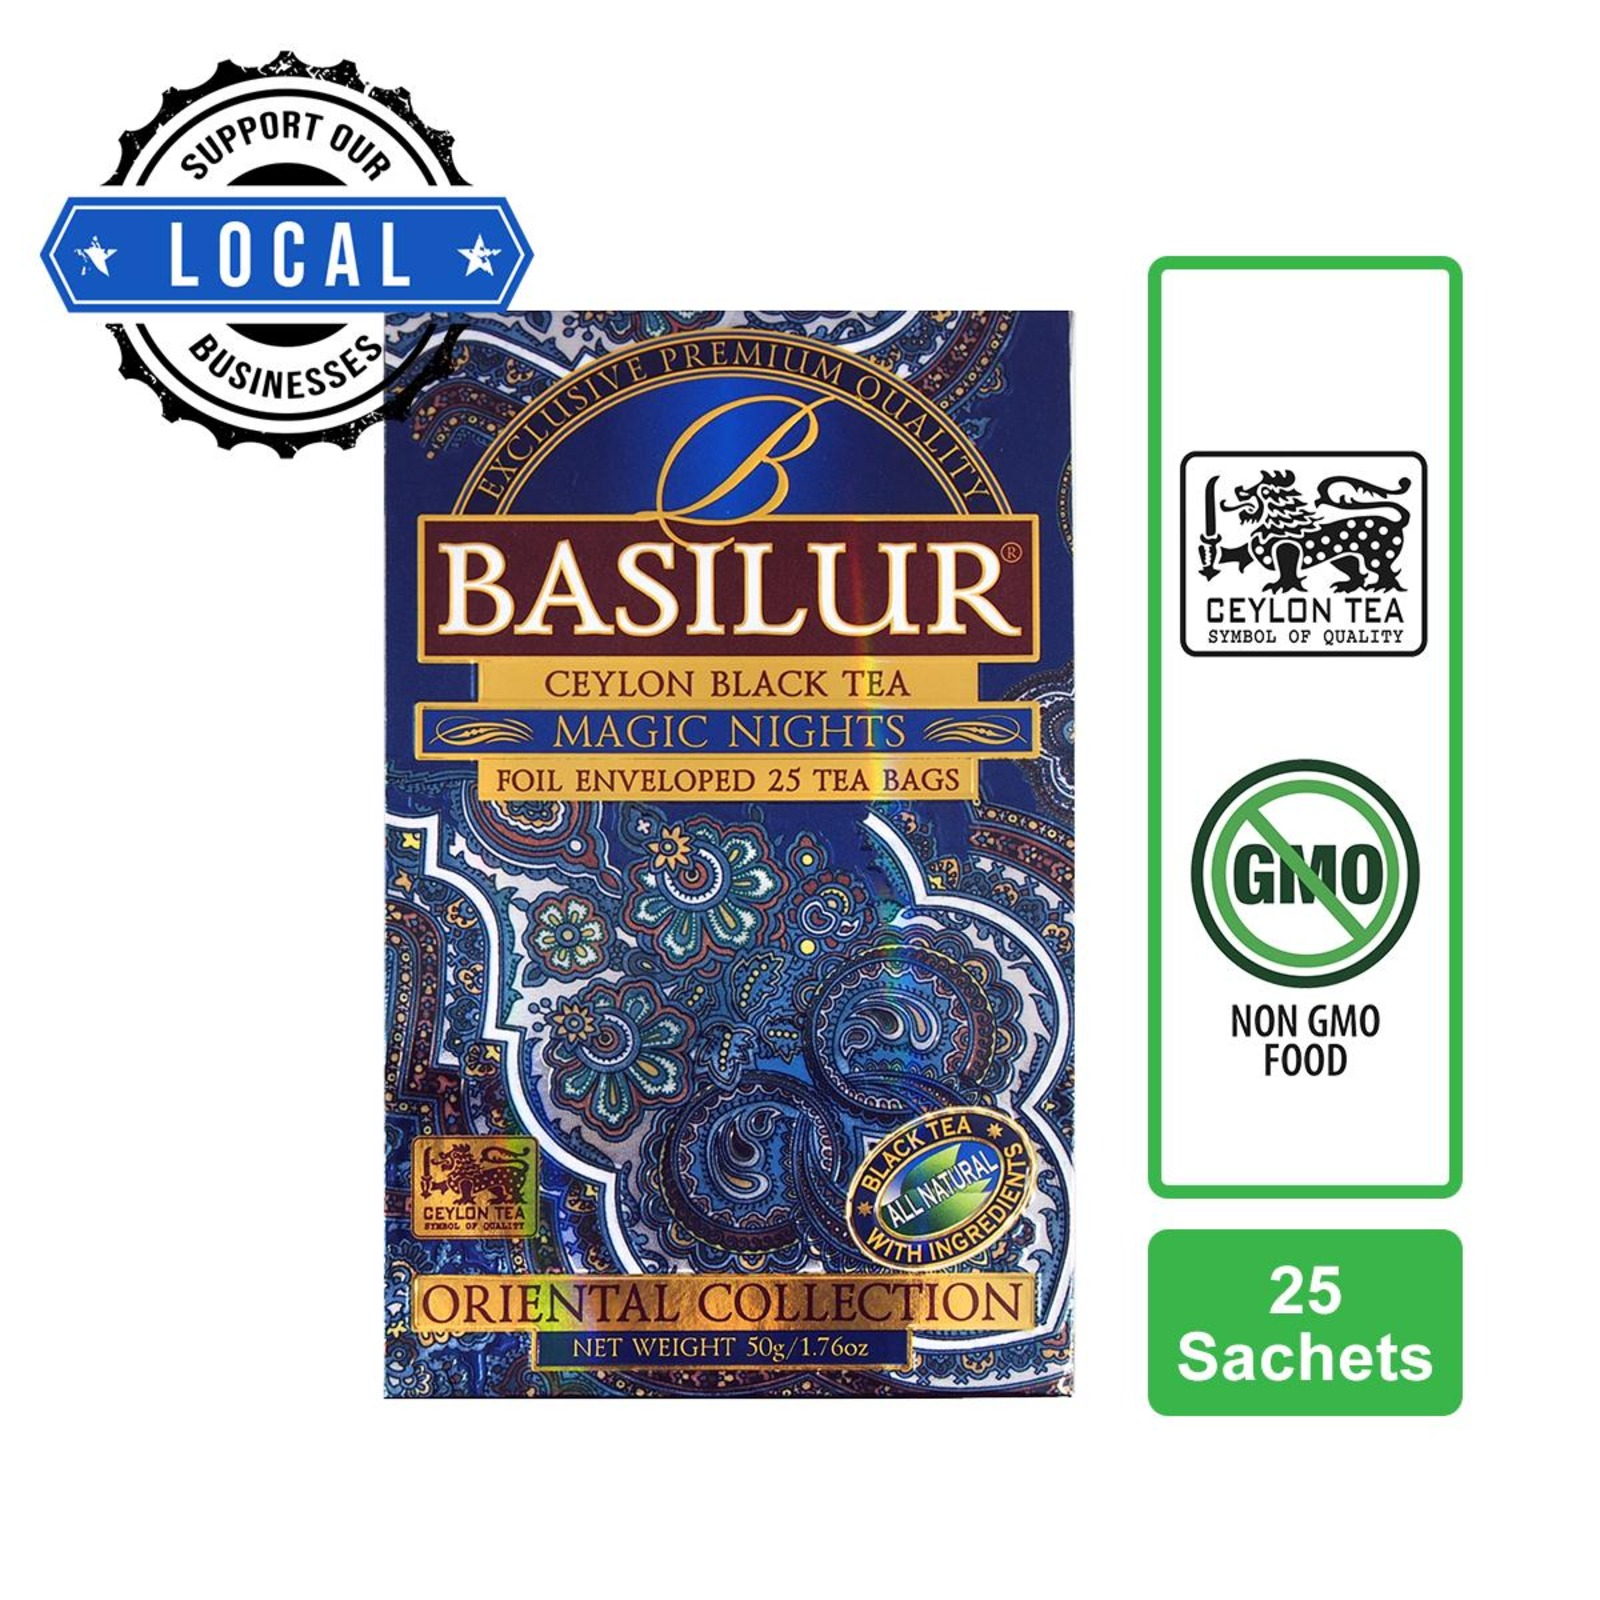 Basilur Magic Nights Strawberry Apricot & Papapya Black Tea